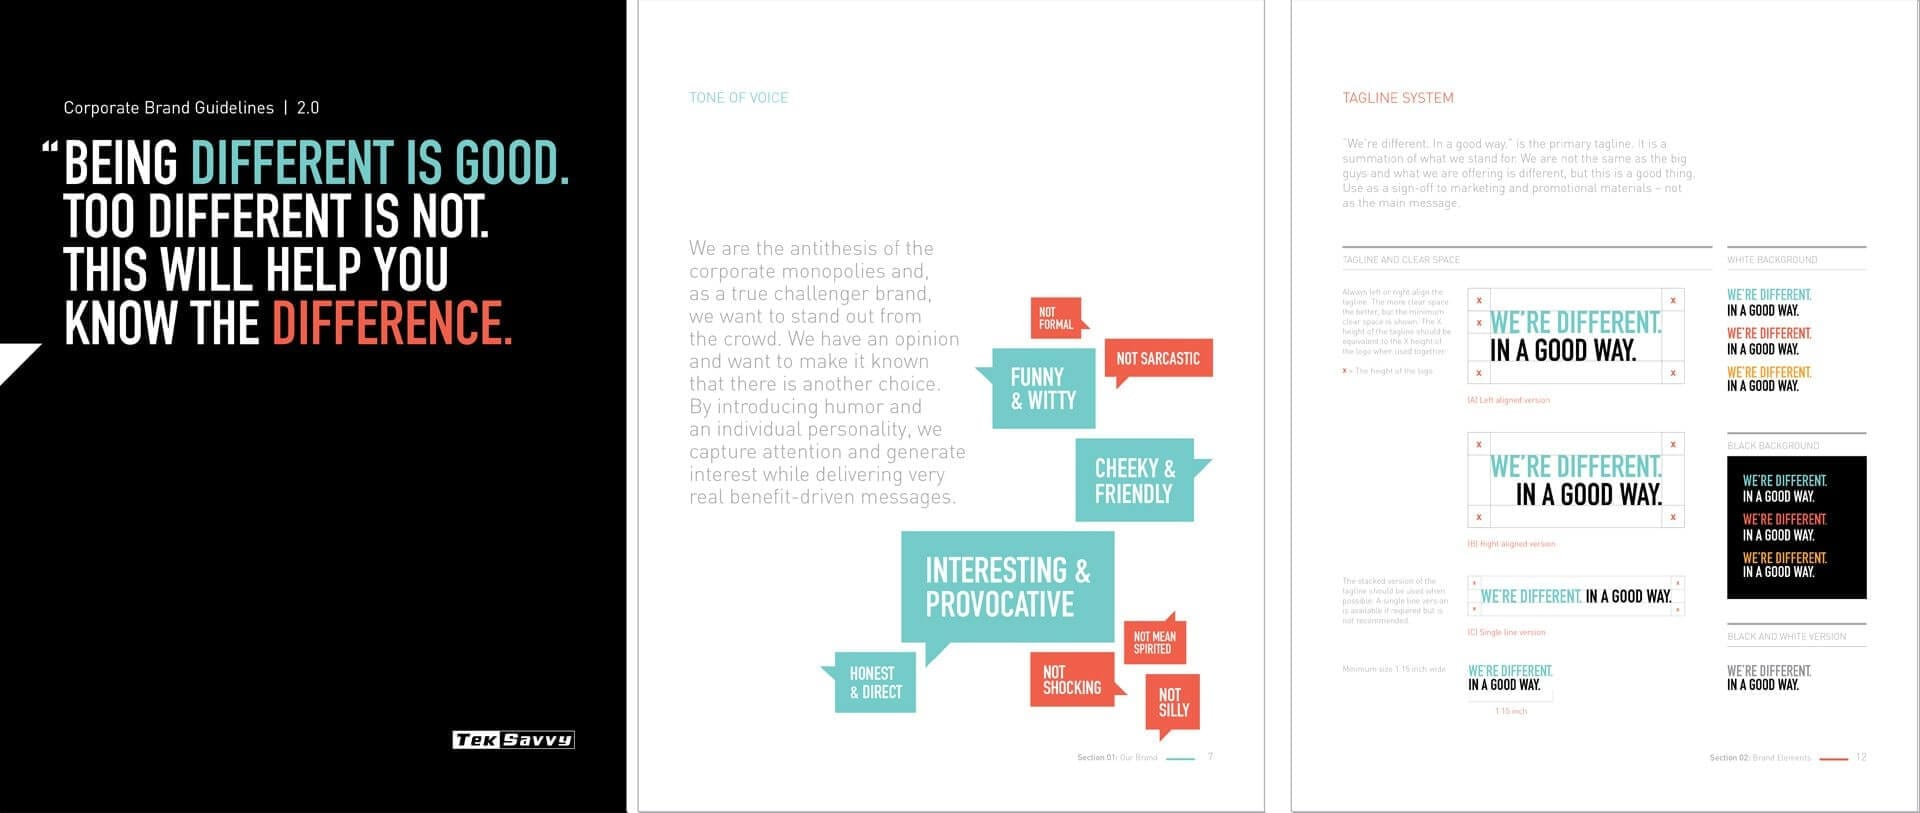 Teksavvy corporate brand guidelines